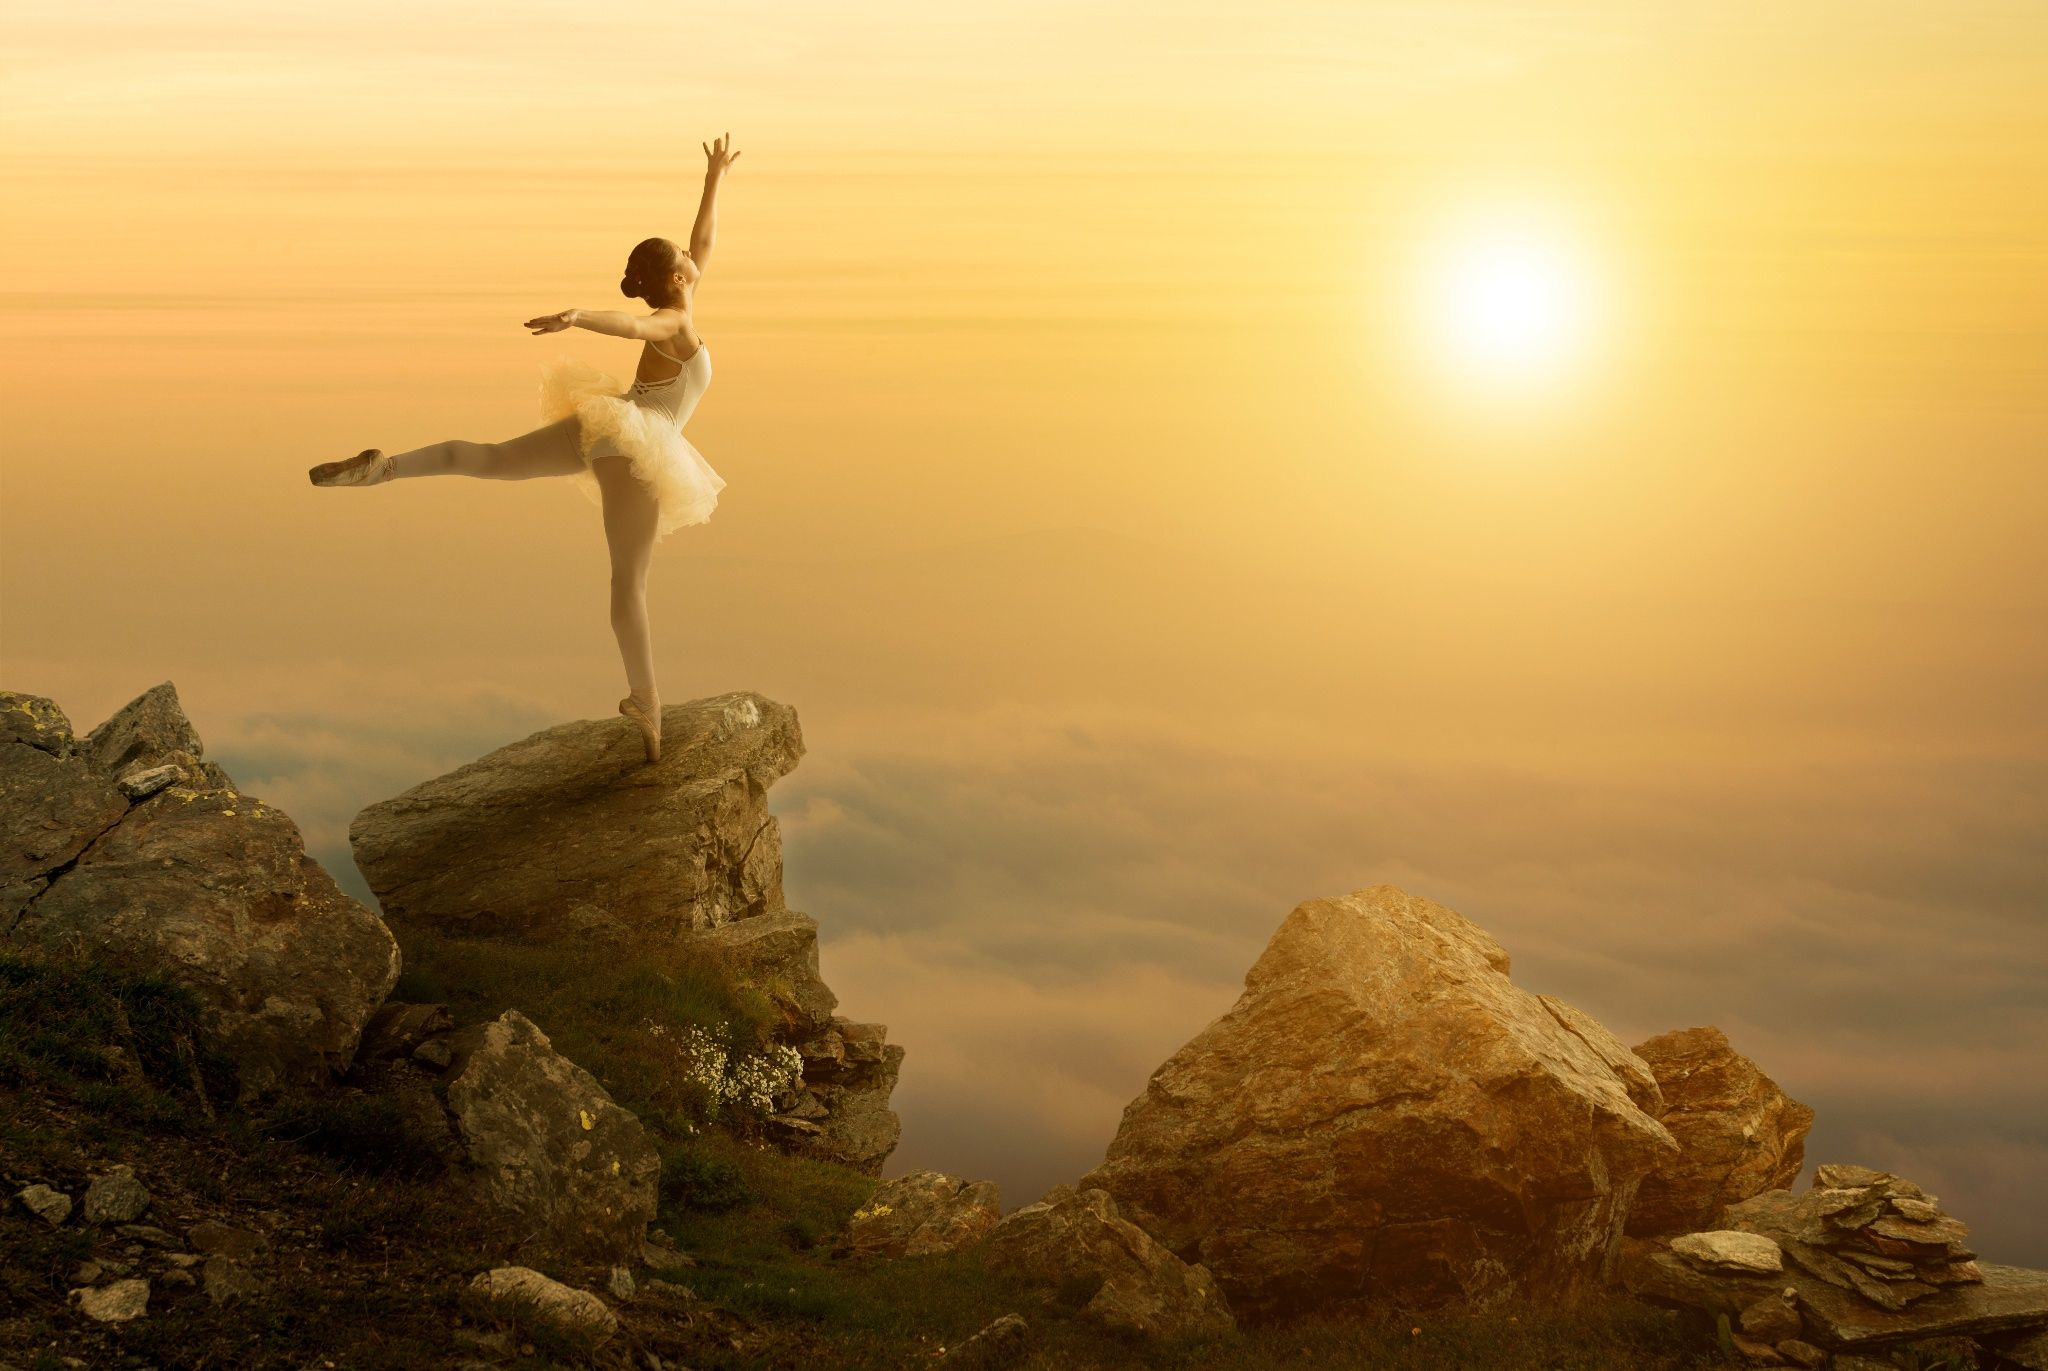 Mystic pictures, ballet dancer stands on the cliff edge - Mystic pictures, ballet dancer stands on the cliff edge